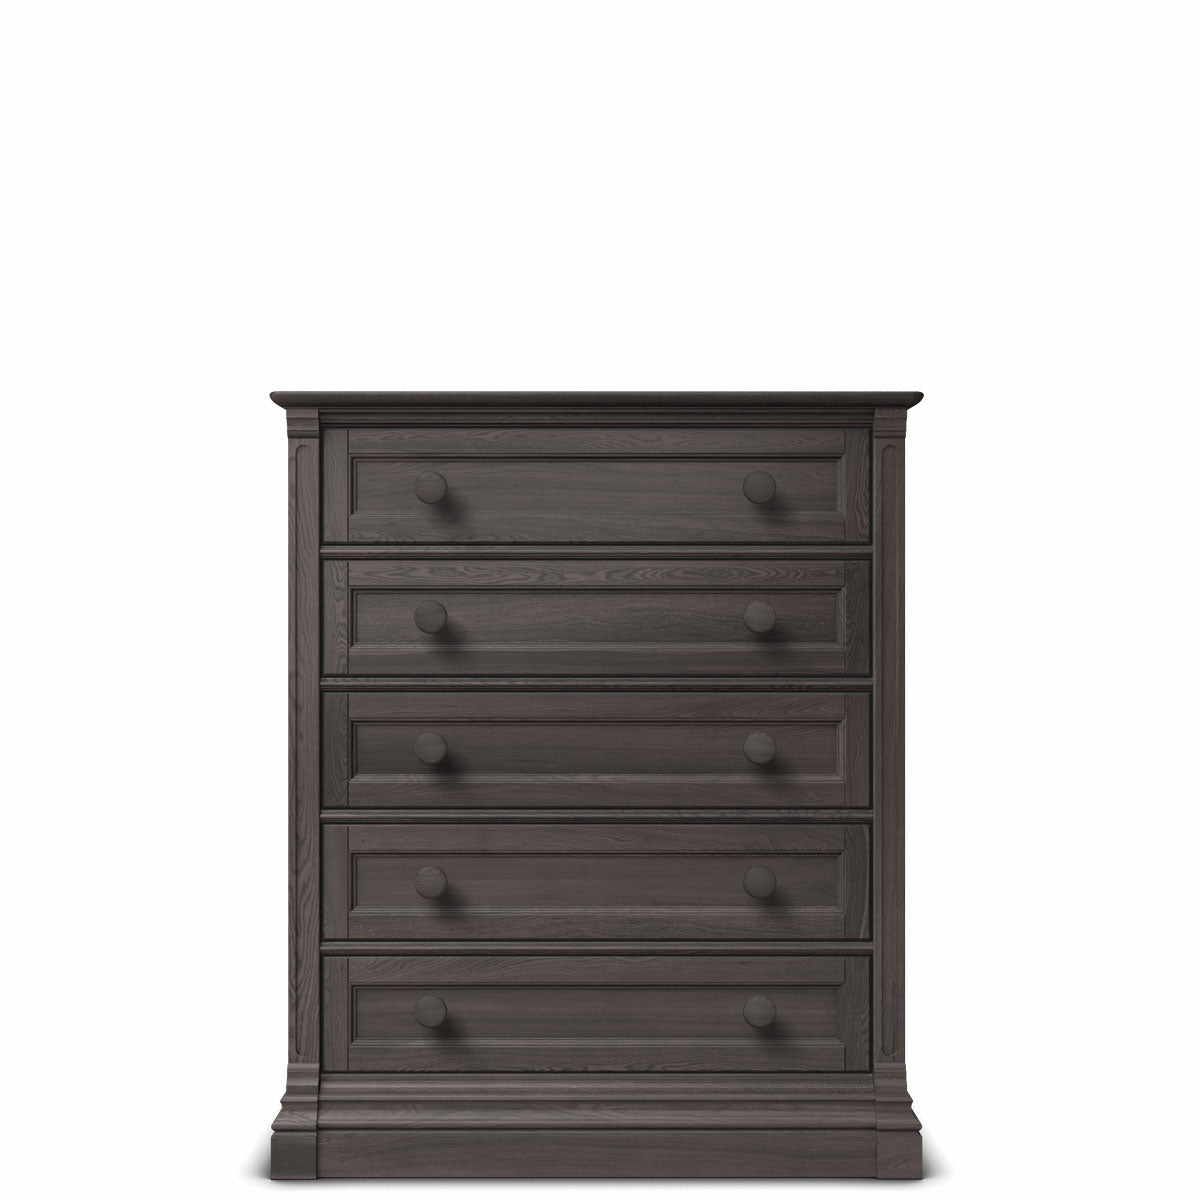 Romina Imperio Five Drawers Chest